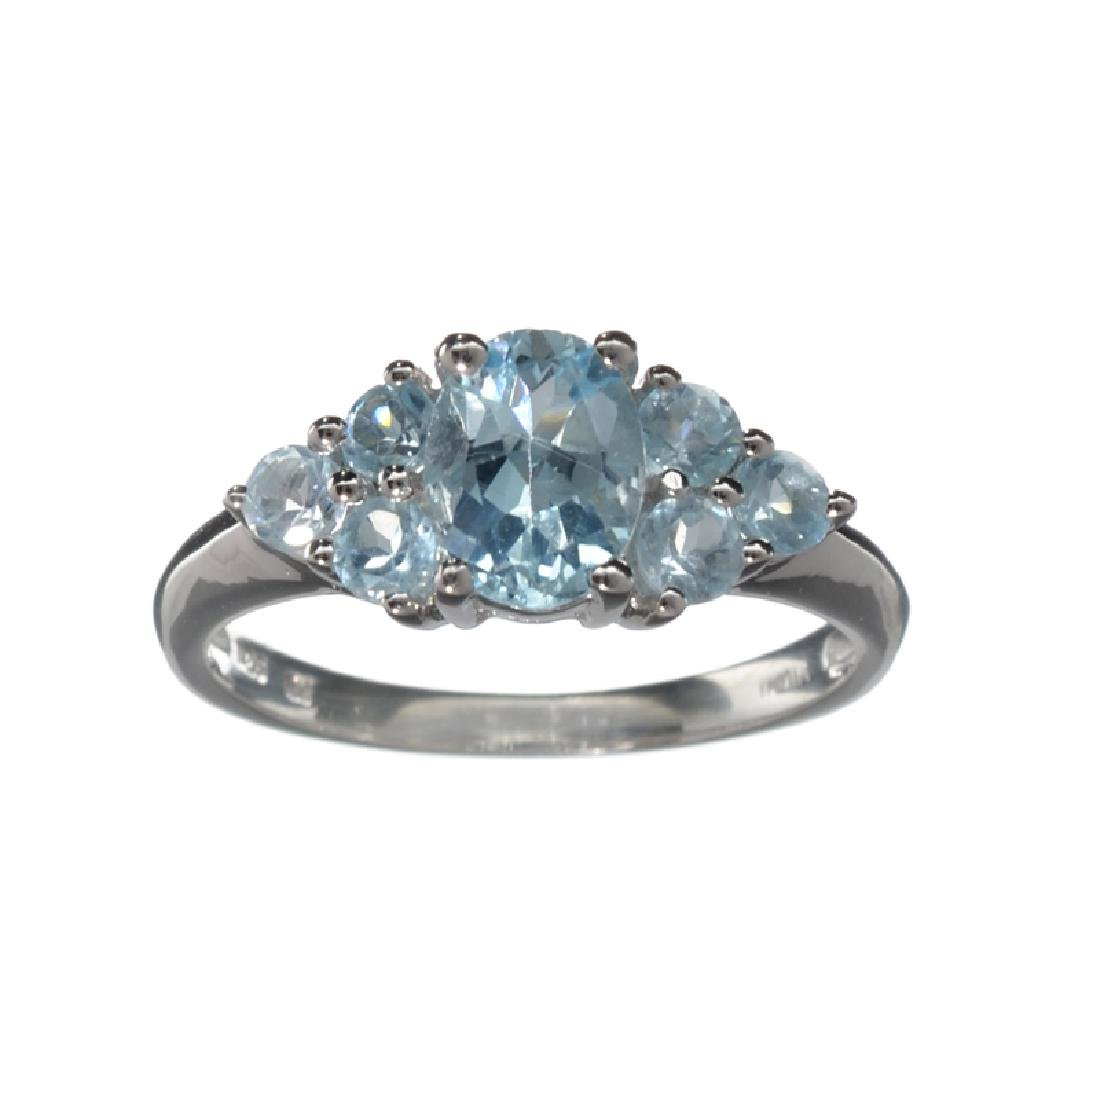 APP: 0.3k Fine Jewelry 2.38CT Topaz And Sterling Silver